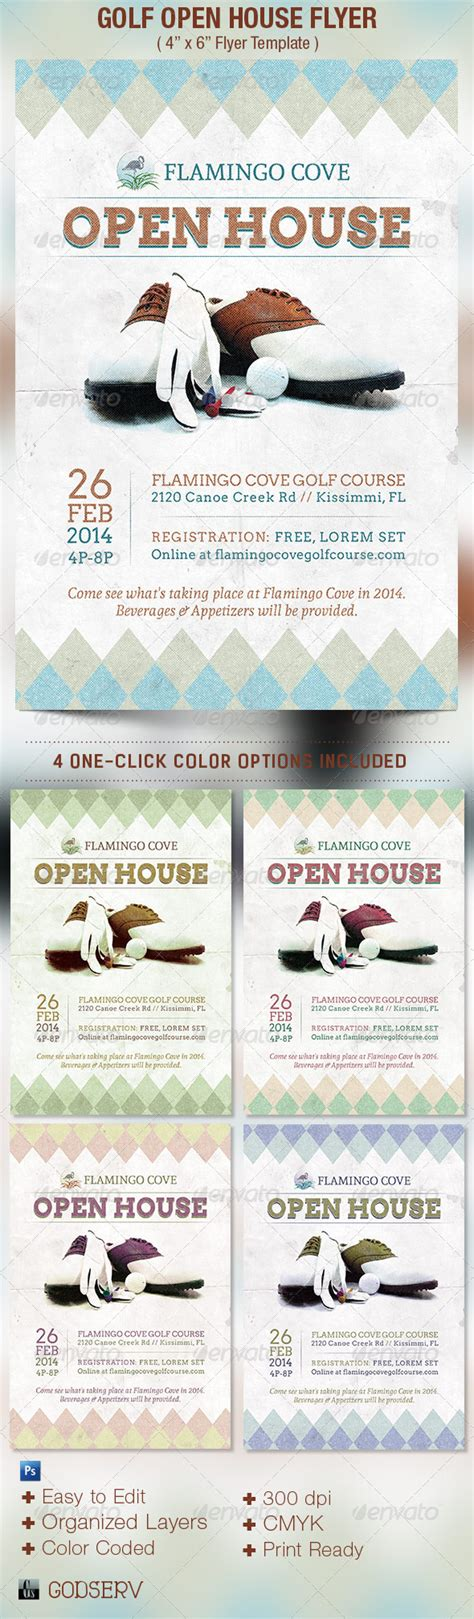 open house flyer template 29 images of school open house flyer template infovia net